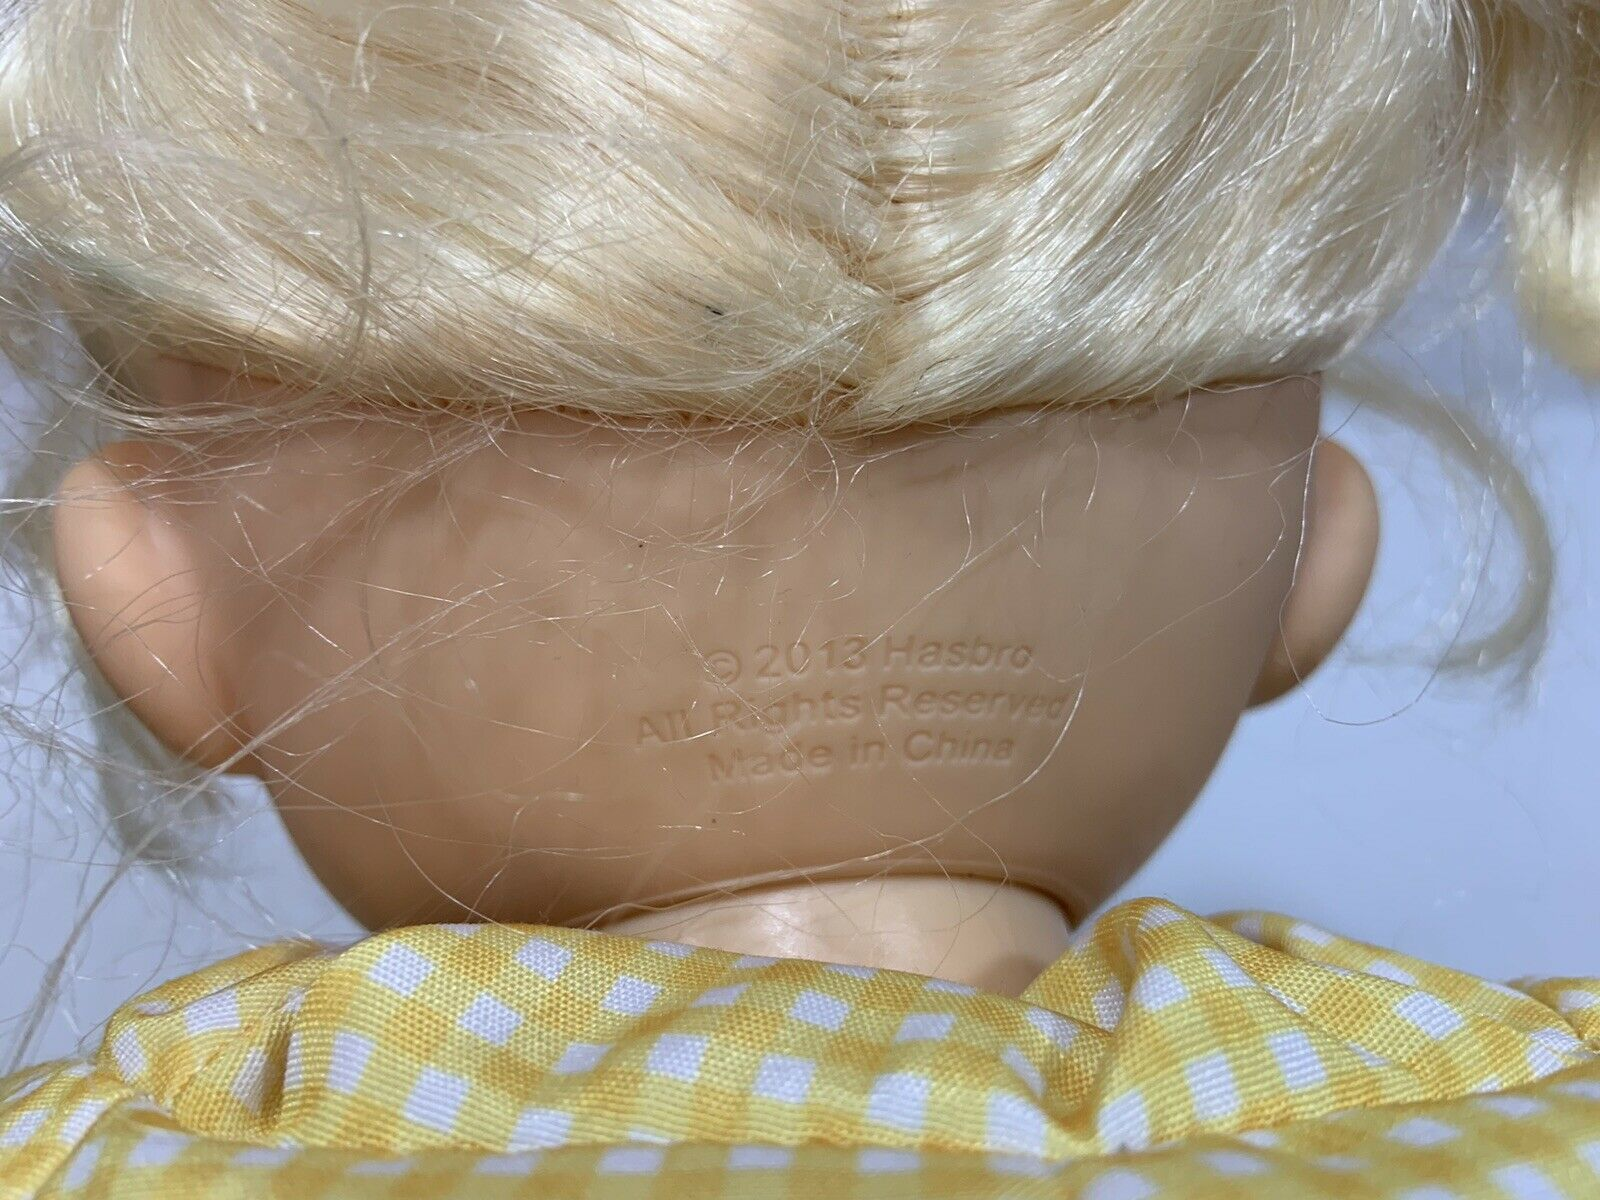 Baby Alive Hasbro 2013 Blonde Doll Interactive Talking Bilingual English Spanish image 7